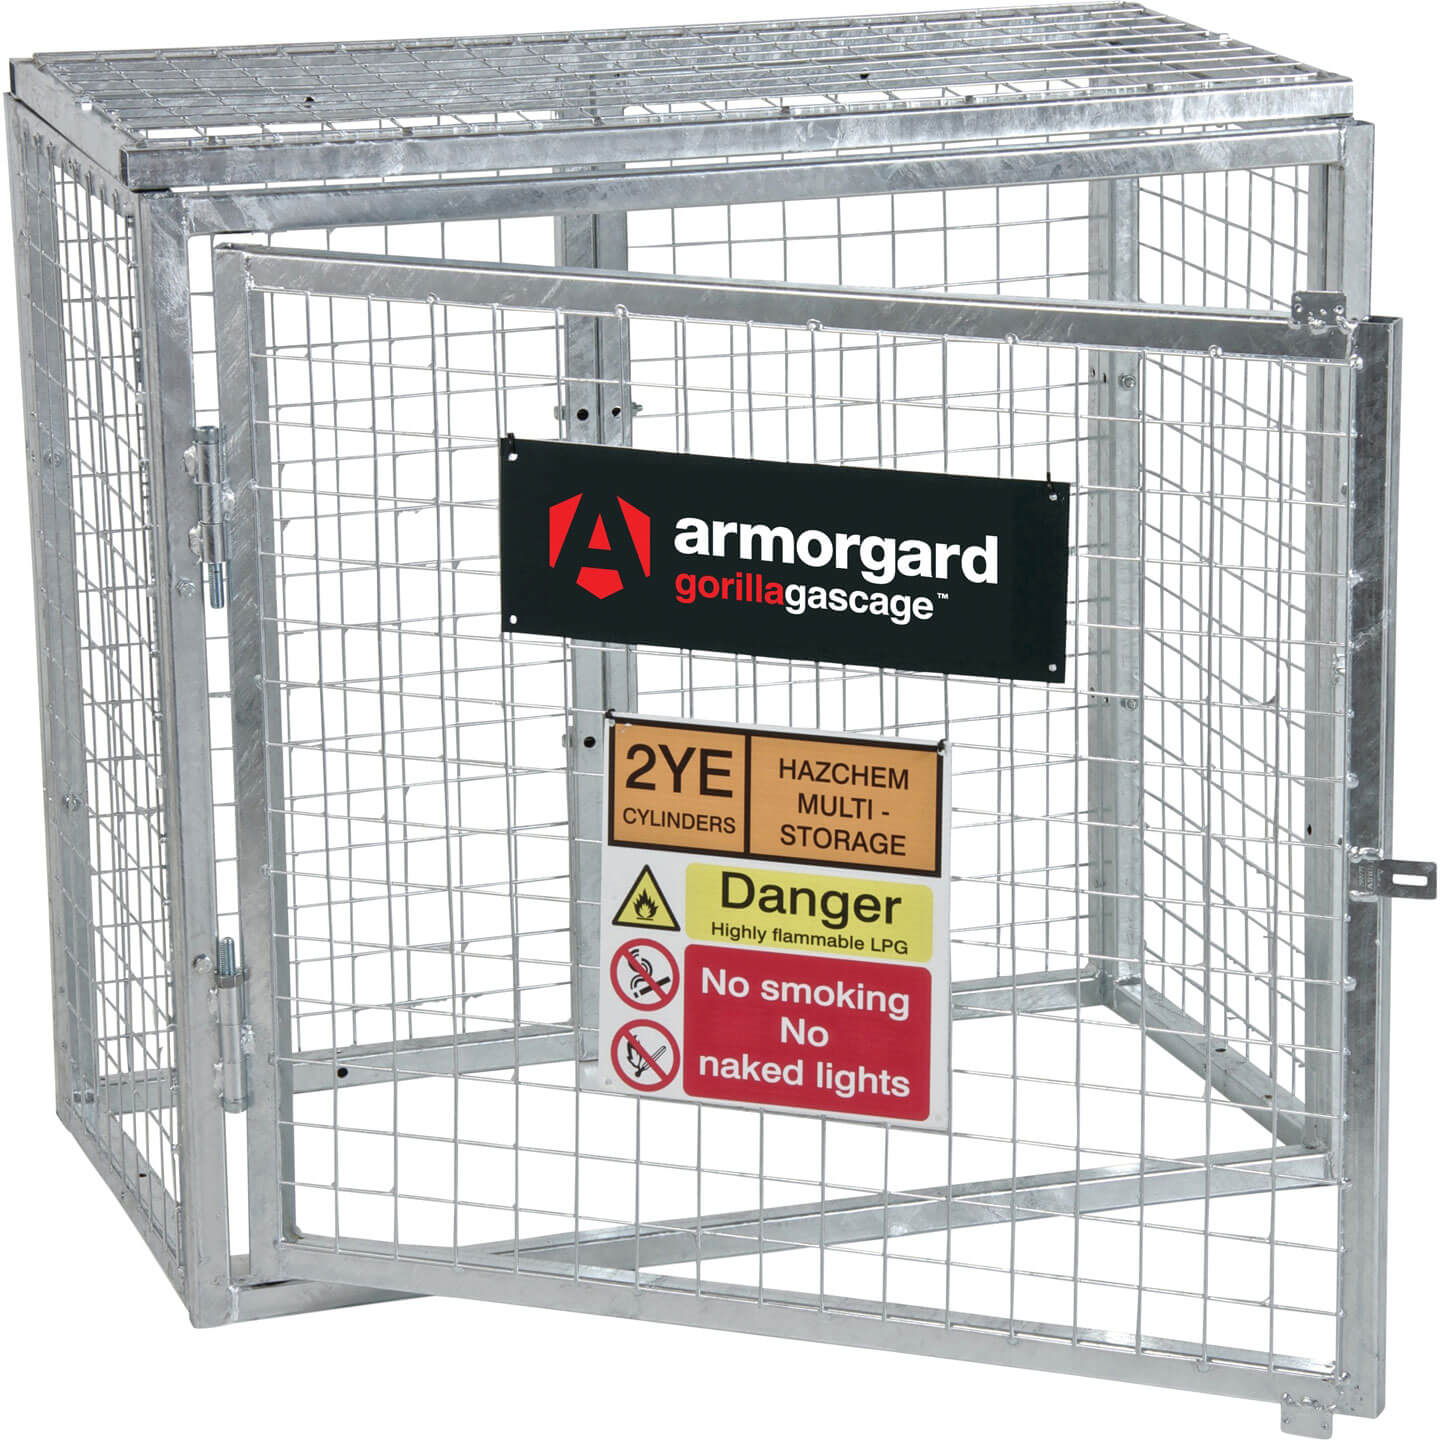 Armorgard Gorilla Bolt Together Gas Cylinder Cage 1000mm x 500mm x 900mm